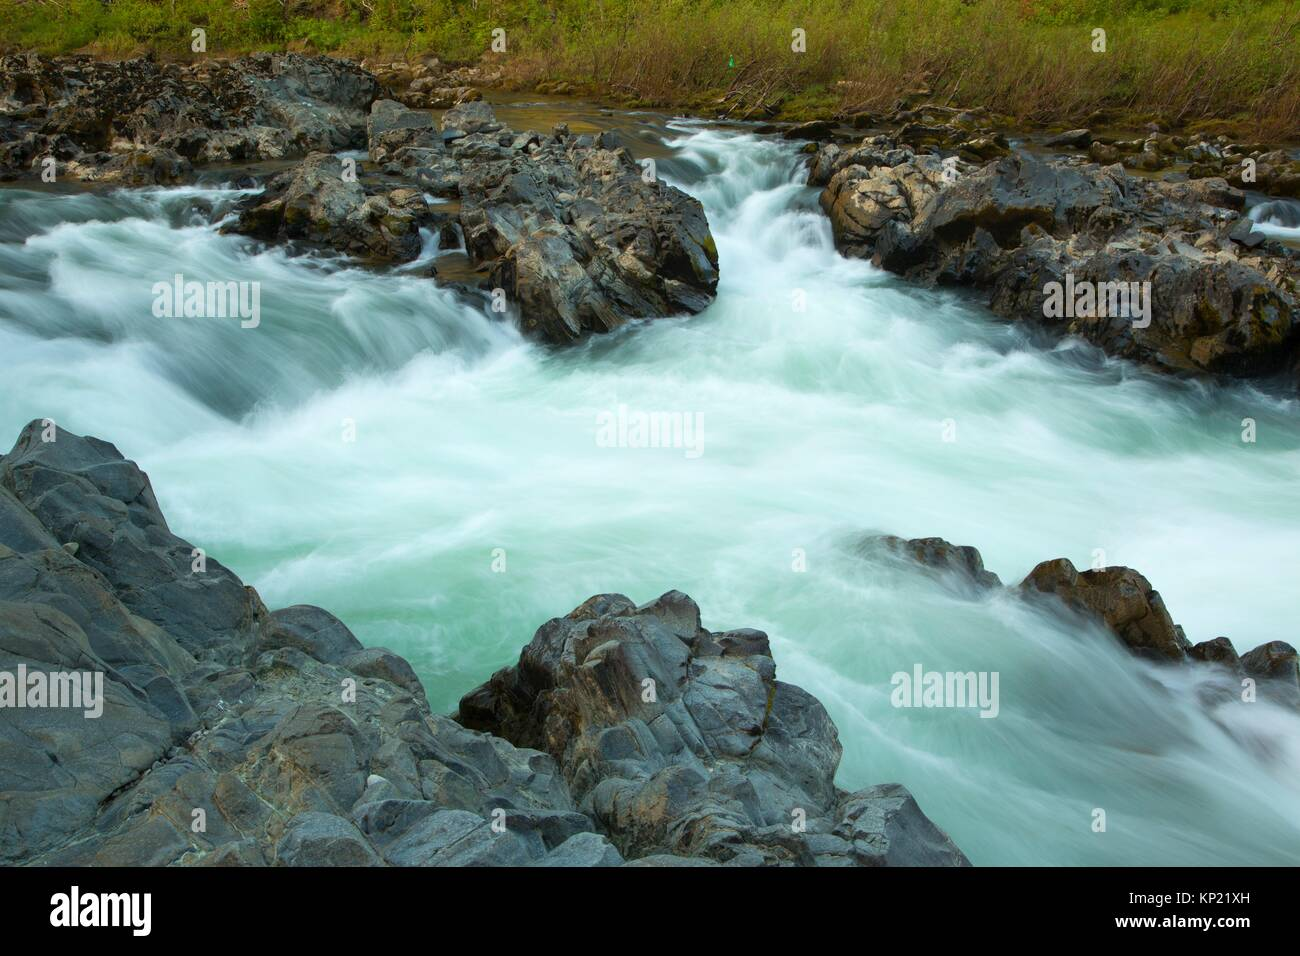 Little Falls along Little Falls Trail, Illinois Wild and Scenic River, Siskiyou National Forest, Oregon. - Stock Image